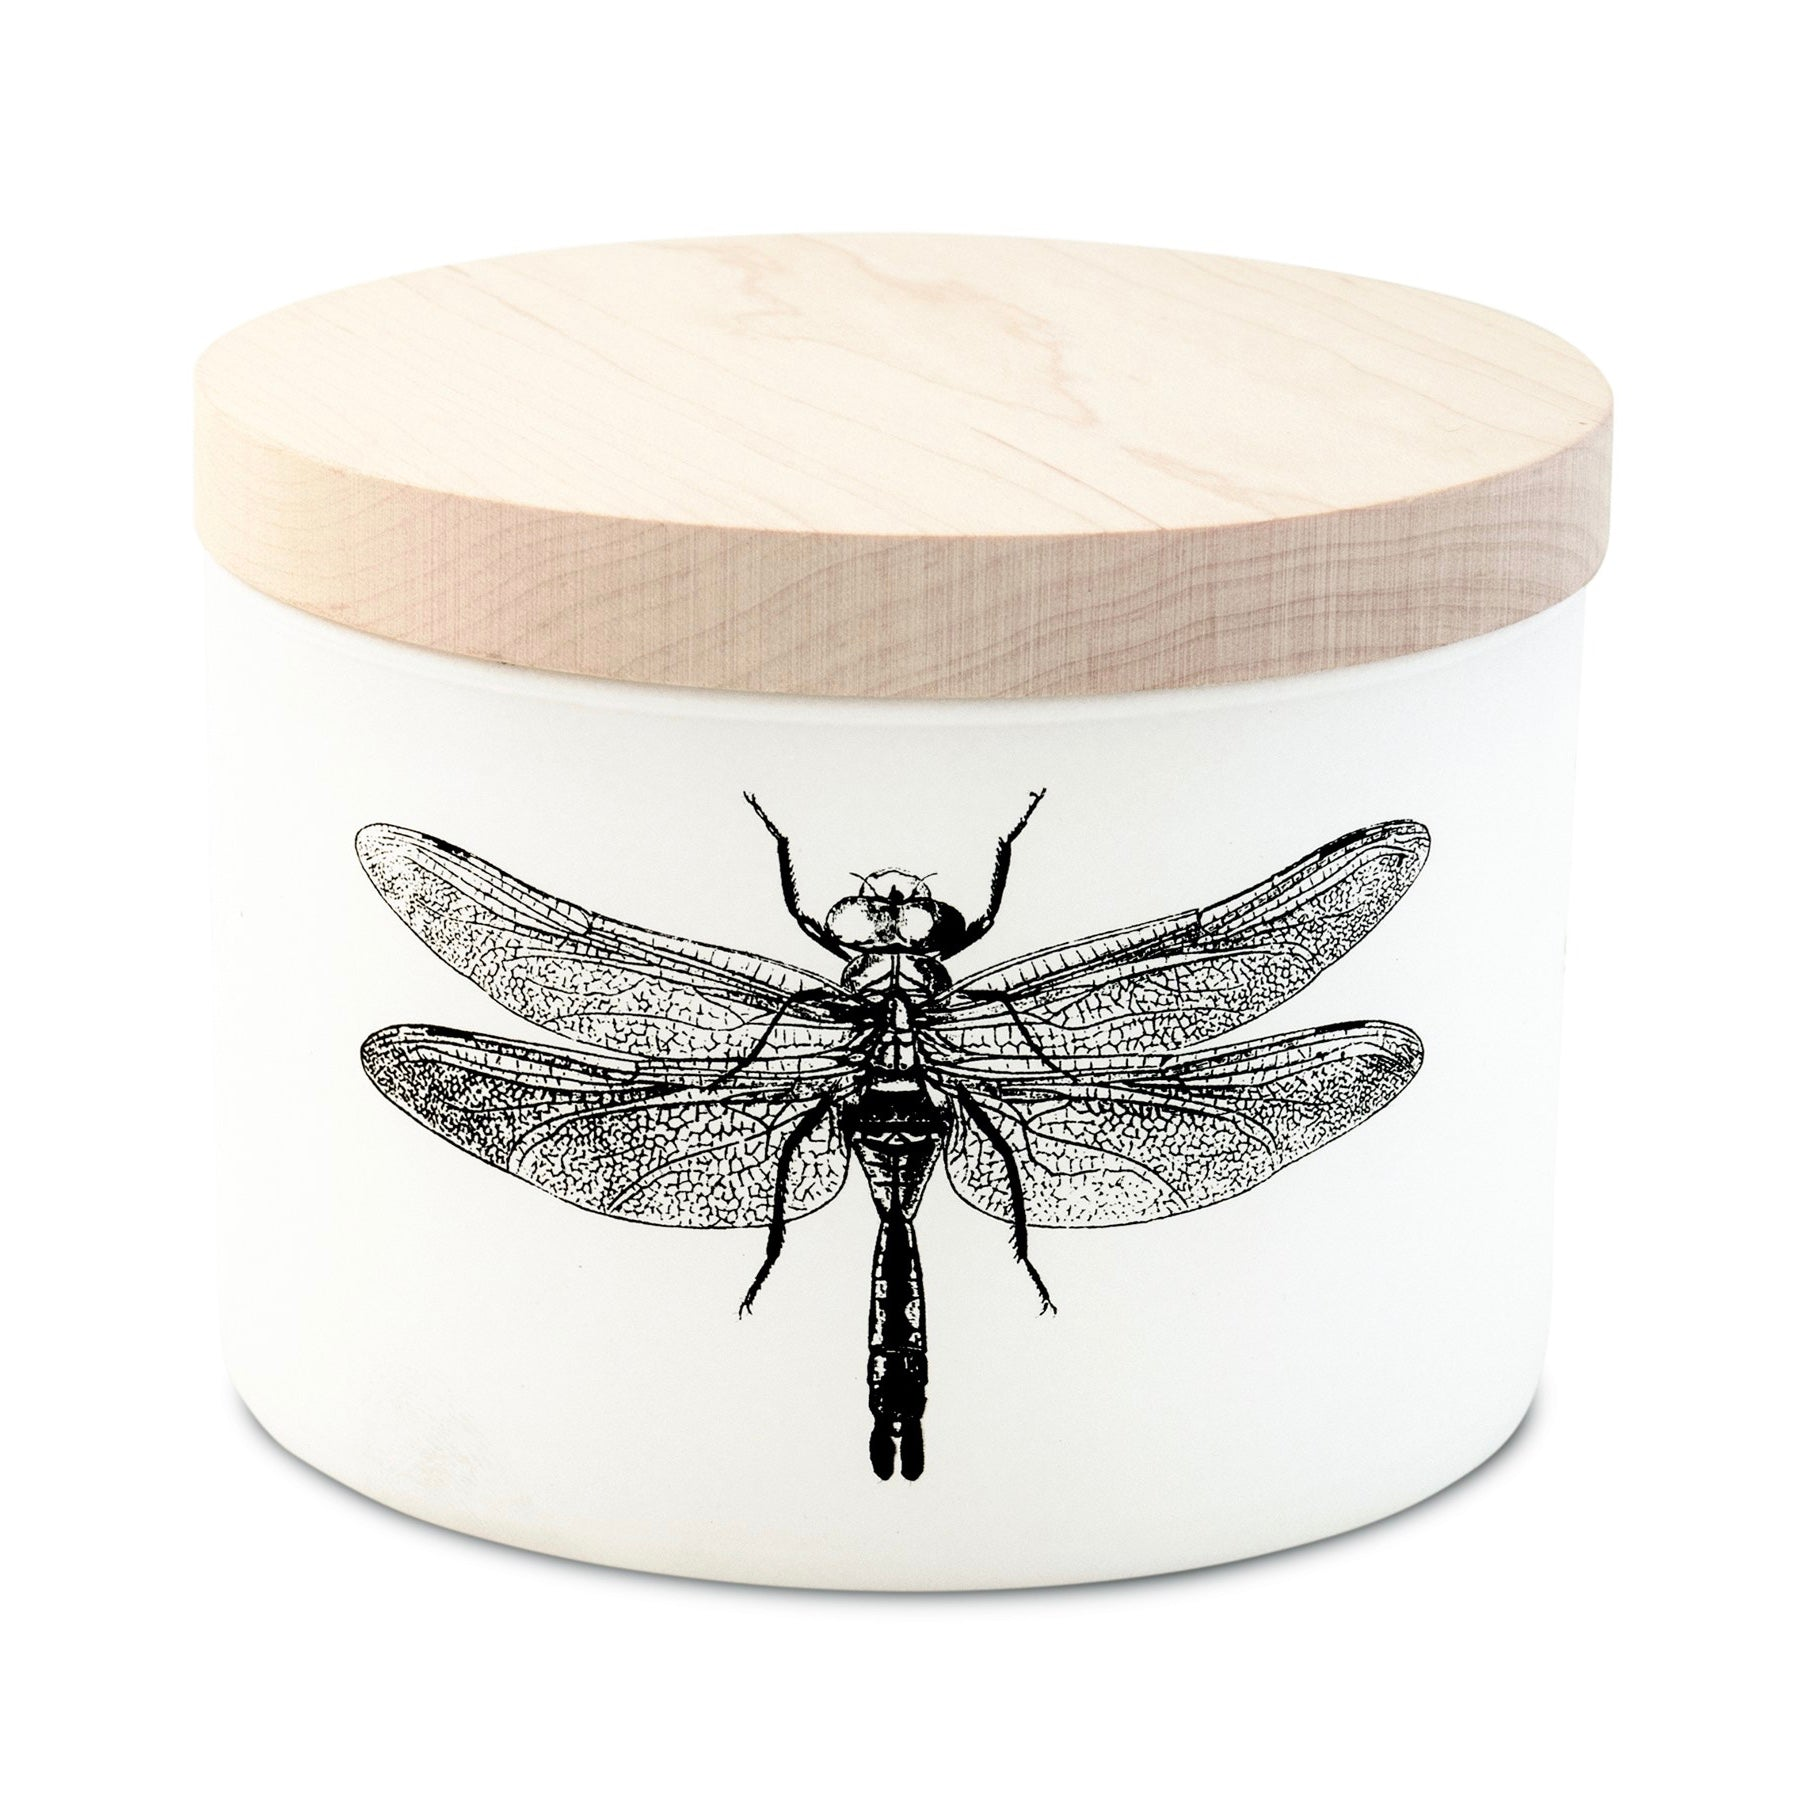 Skeem Design - 3 Wick Citronella Sea Salt Dragonfly Candle